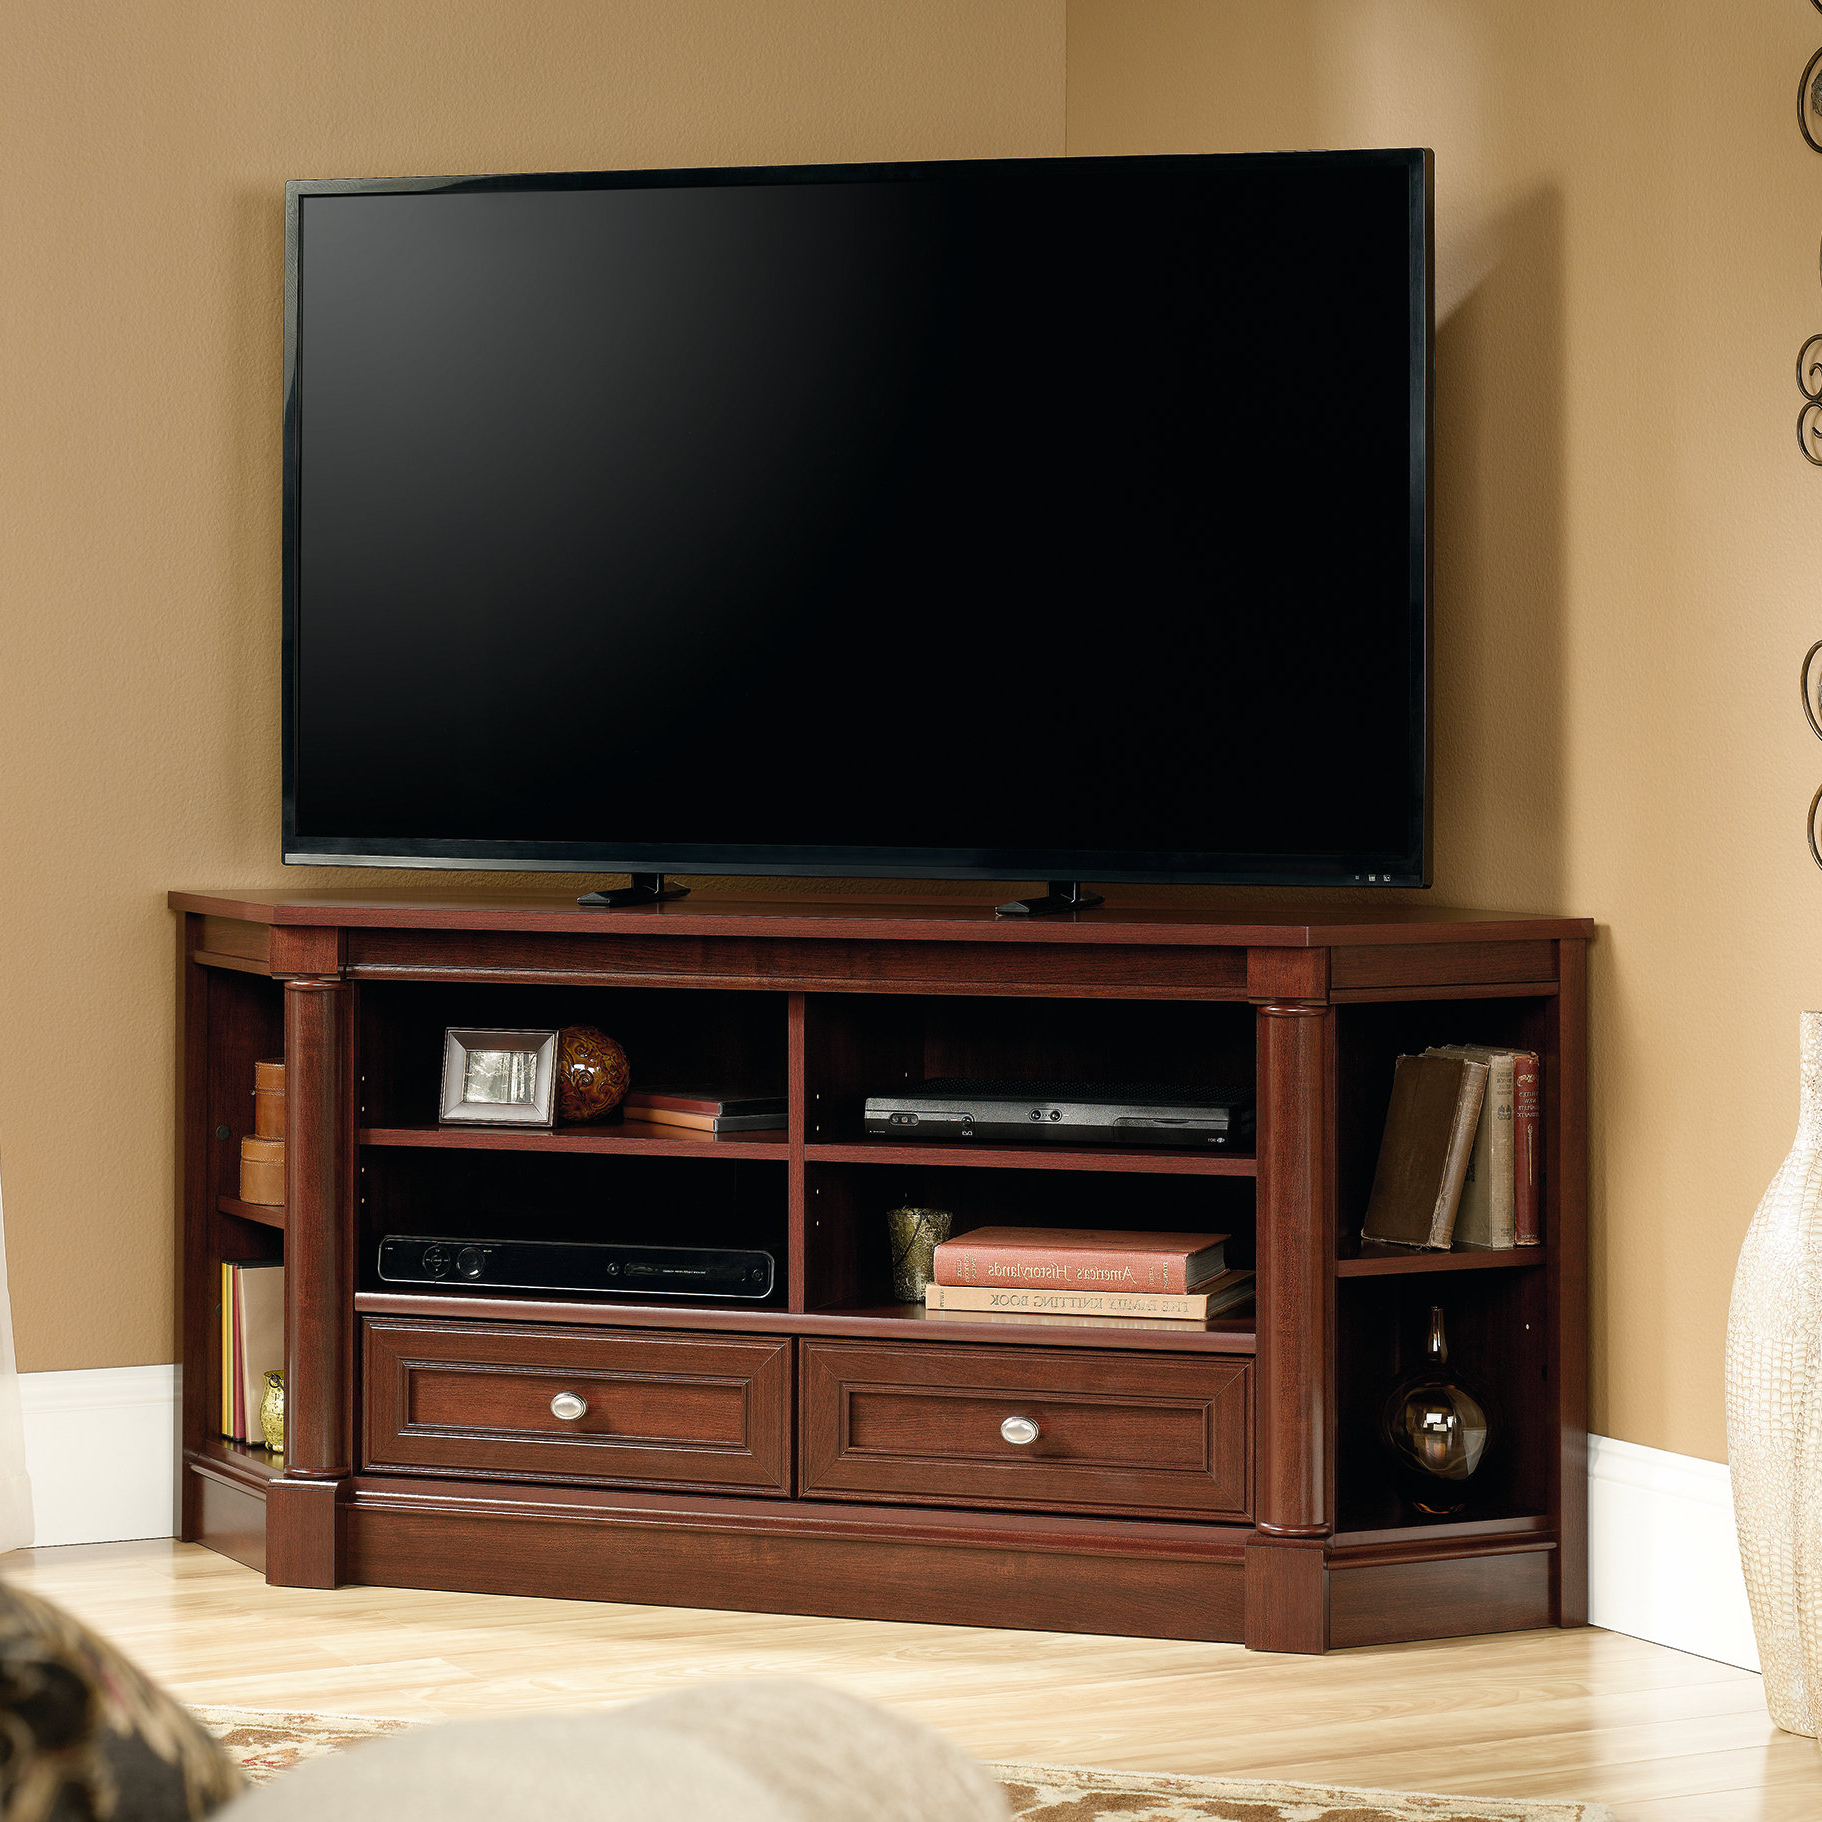 Newest Black Corner Tv Stands For Tvs Up To 60 Throughout 55 In Corner Tv Stand (Gallery 8 of 20)